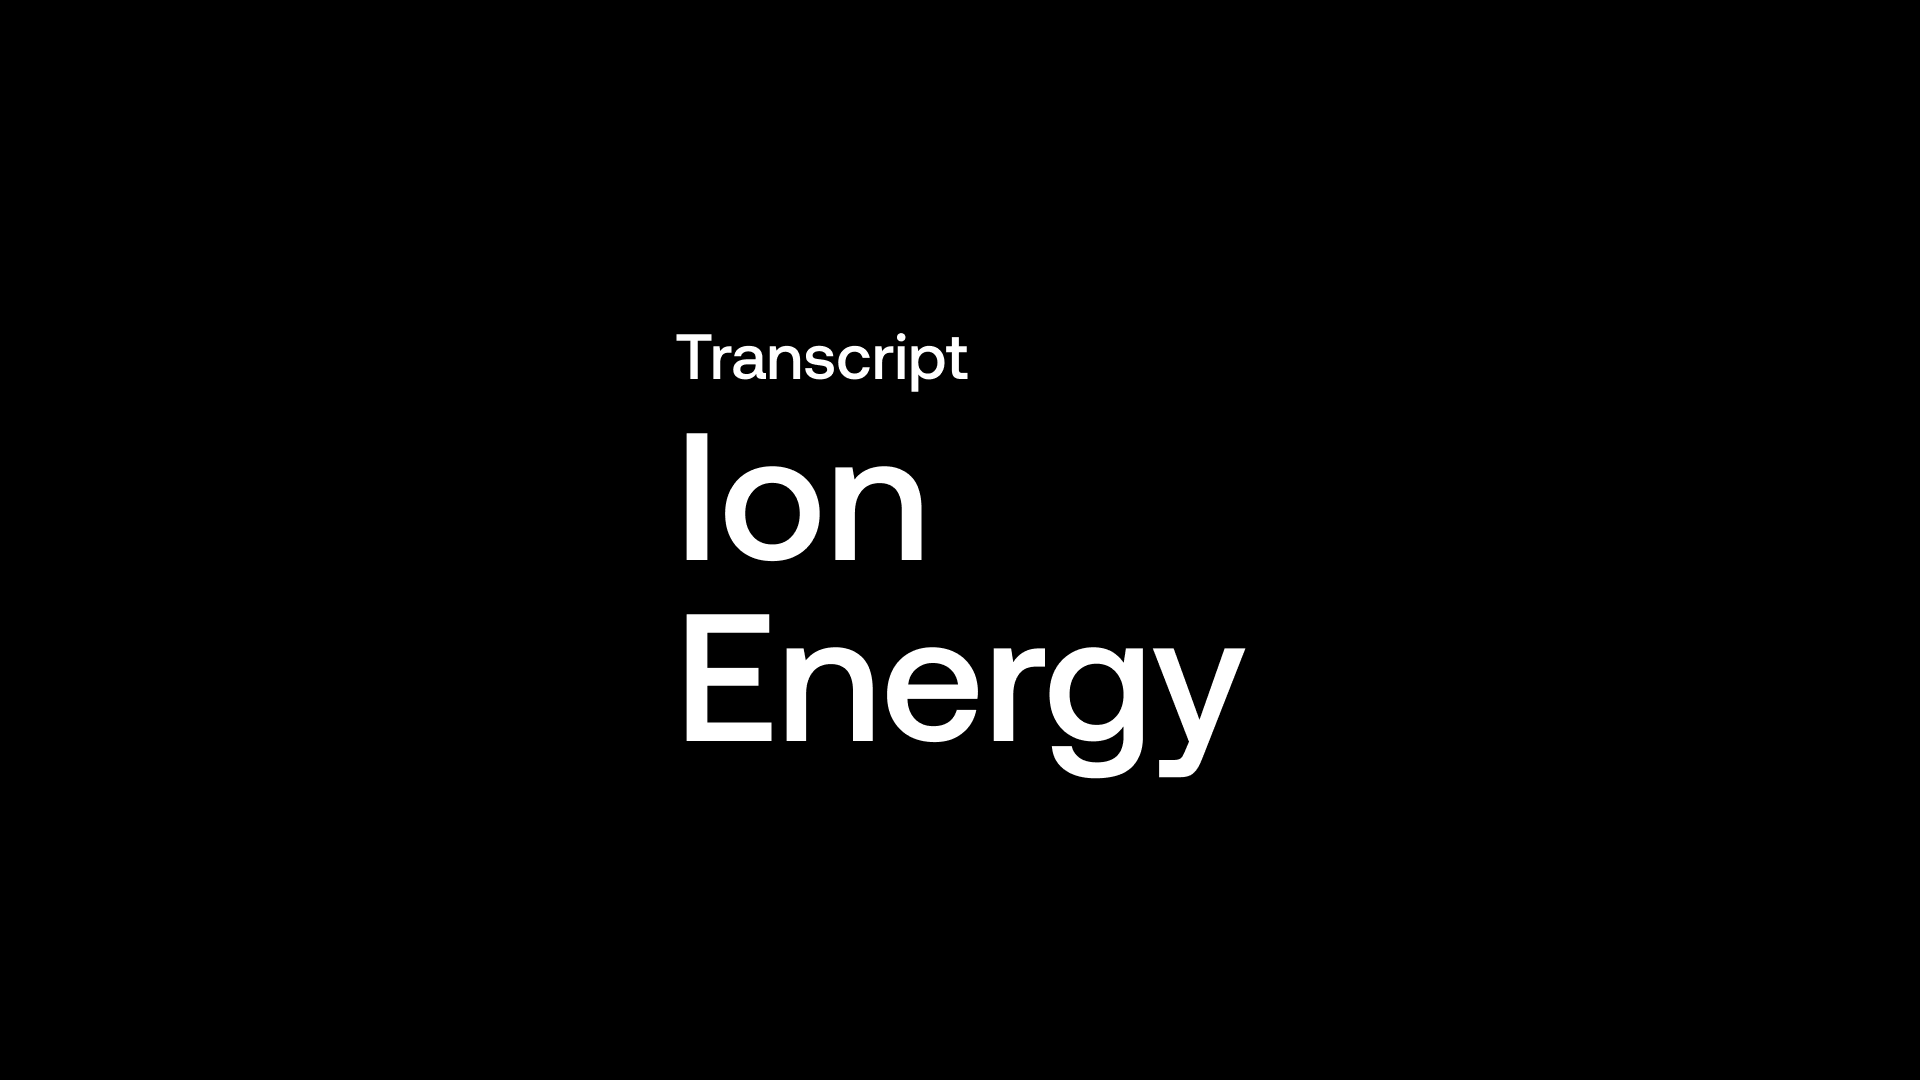 Transcript: ION Energy (ION) - Cash to Drill & $11M of Warrants